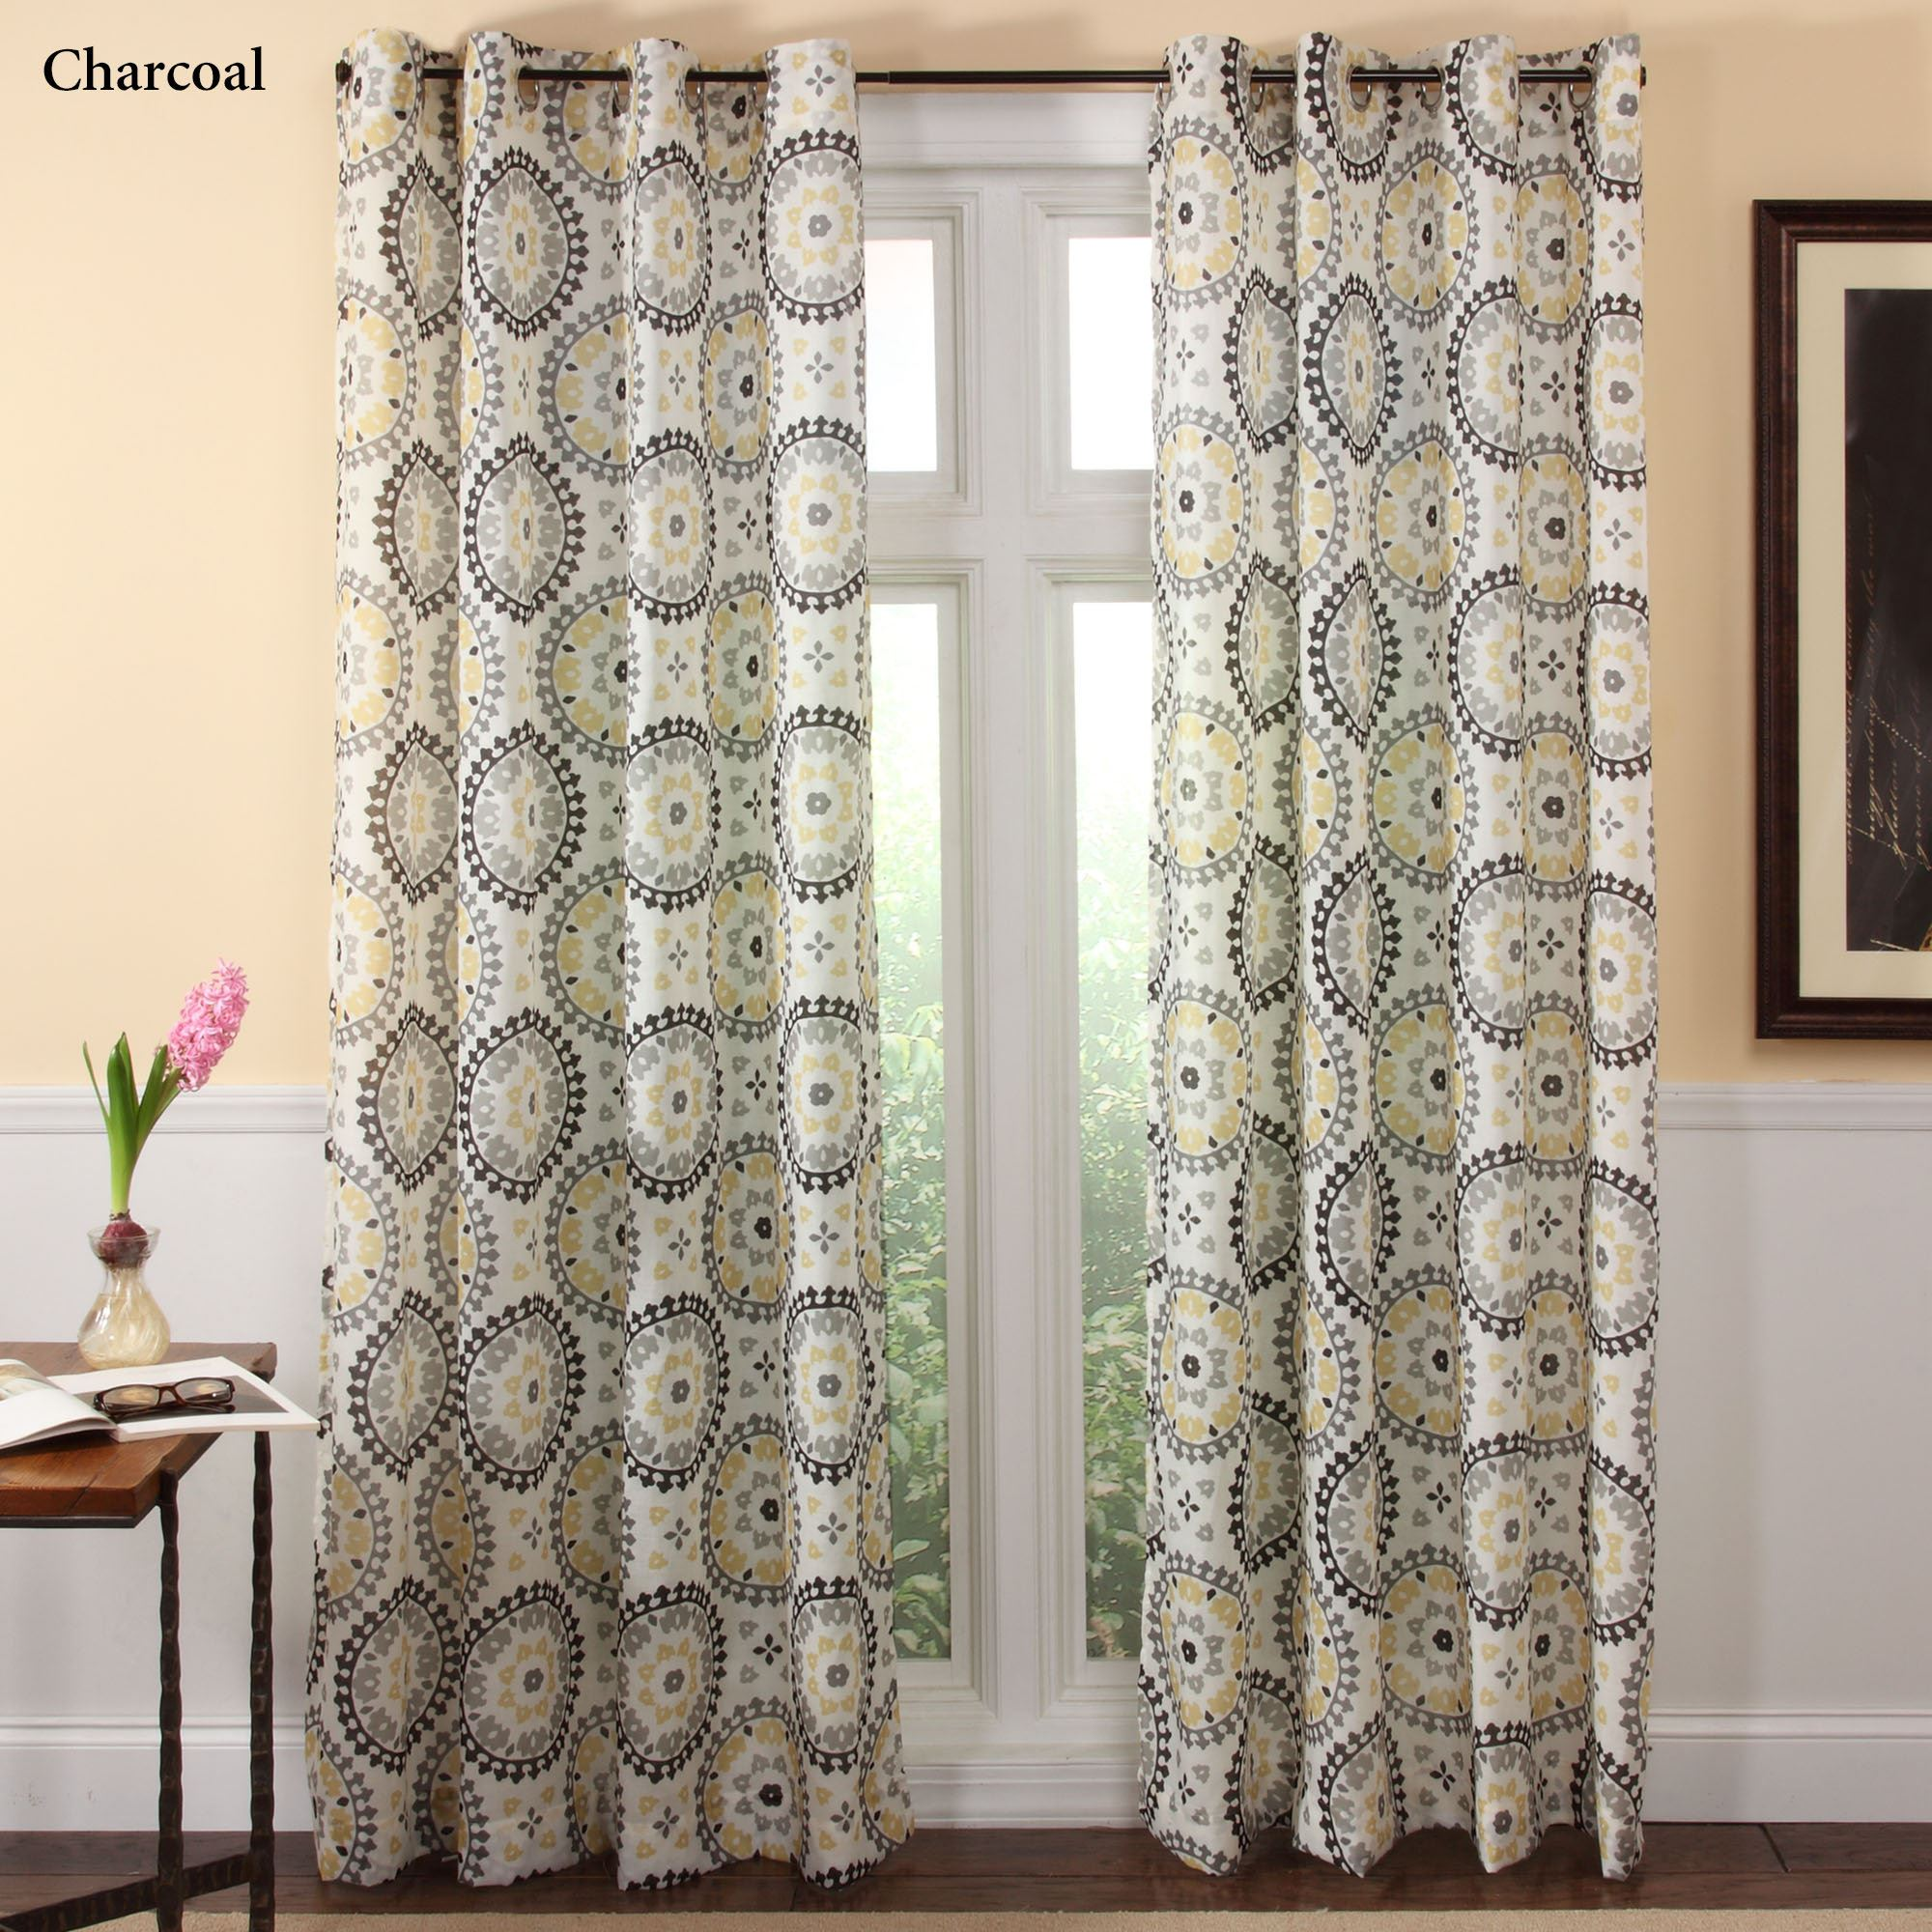 curtains door handballtunisie curtain us front l commendable panel org thewrightstuff panels side